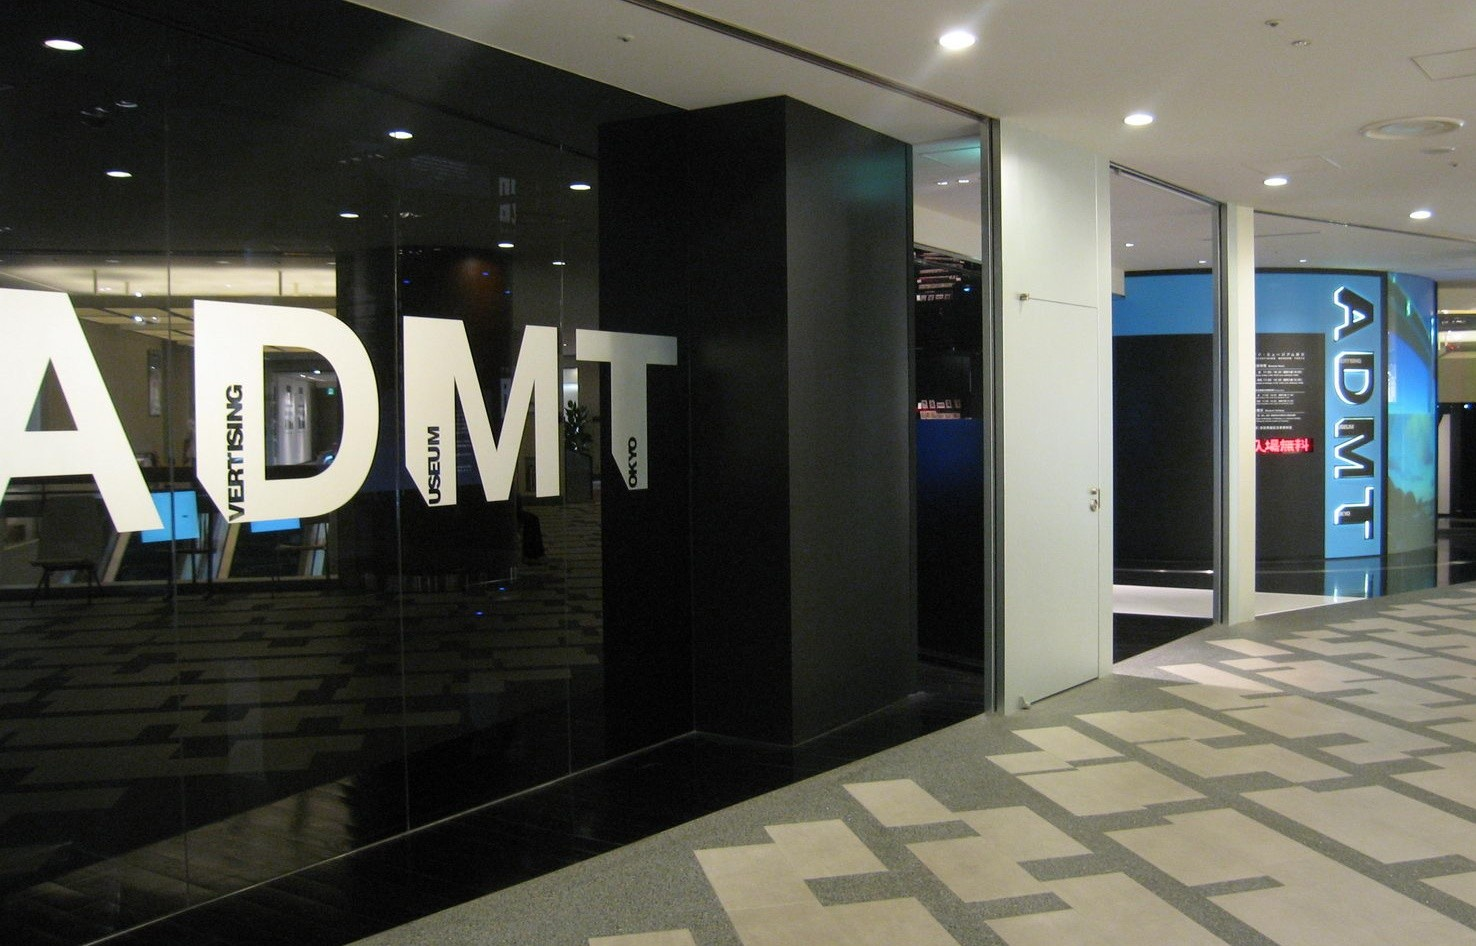 Tenshudai Tokyo, All About ADMT: Advertising Museum Tokyo | All About Japan